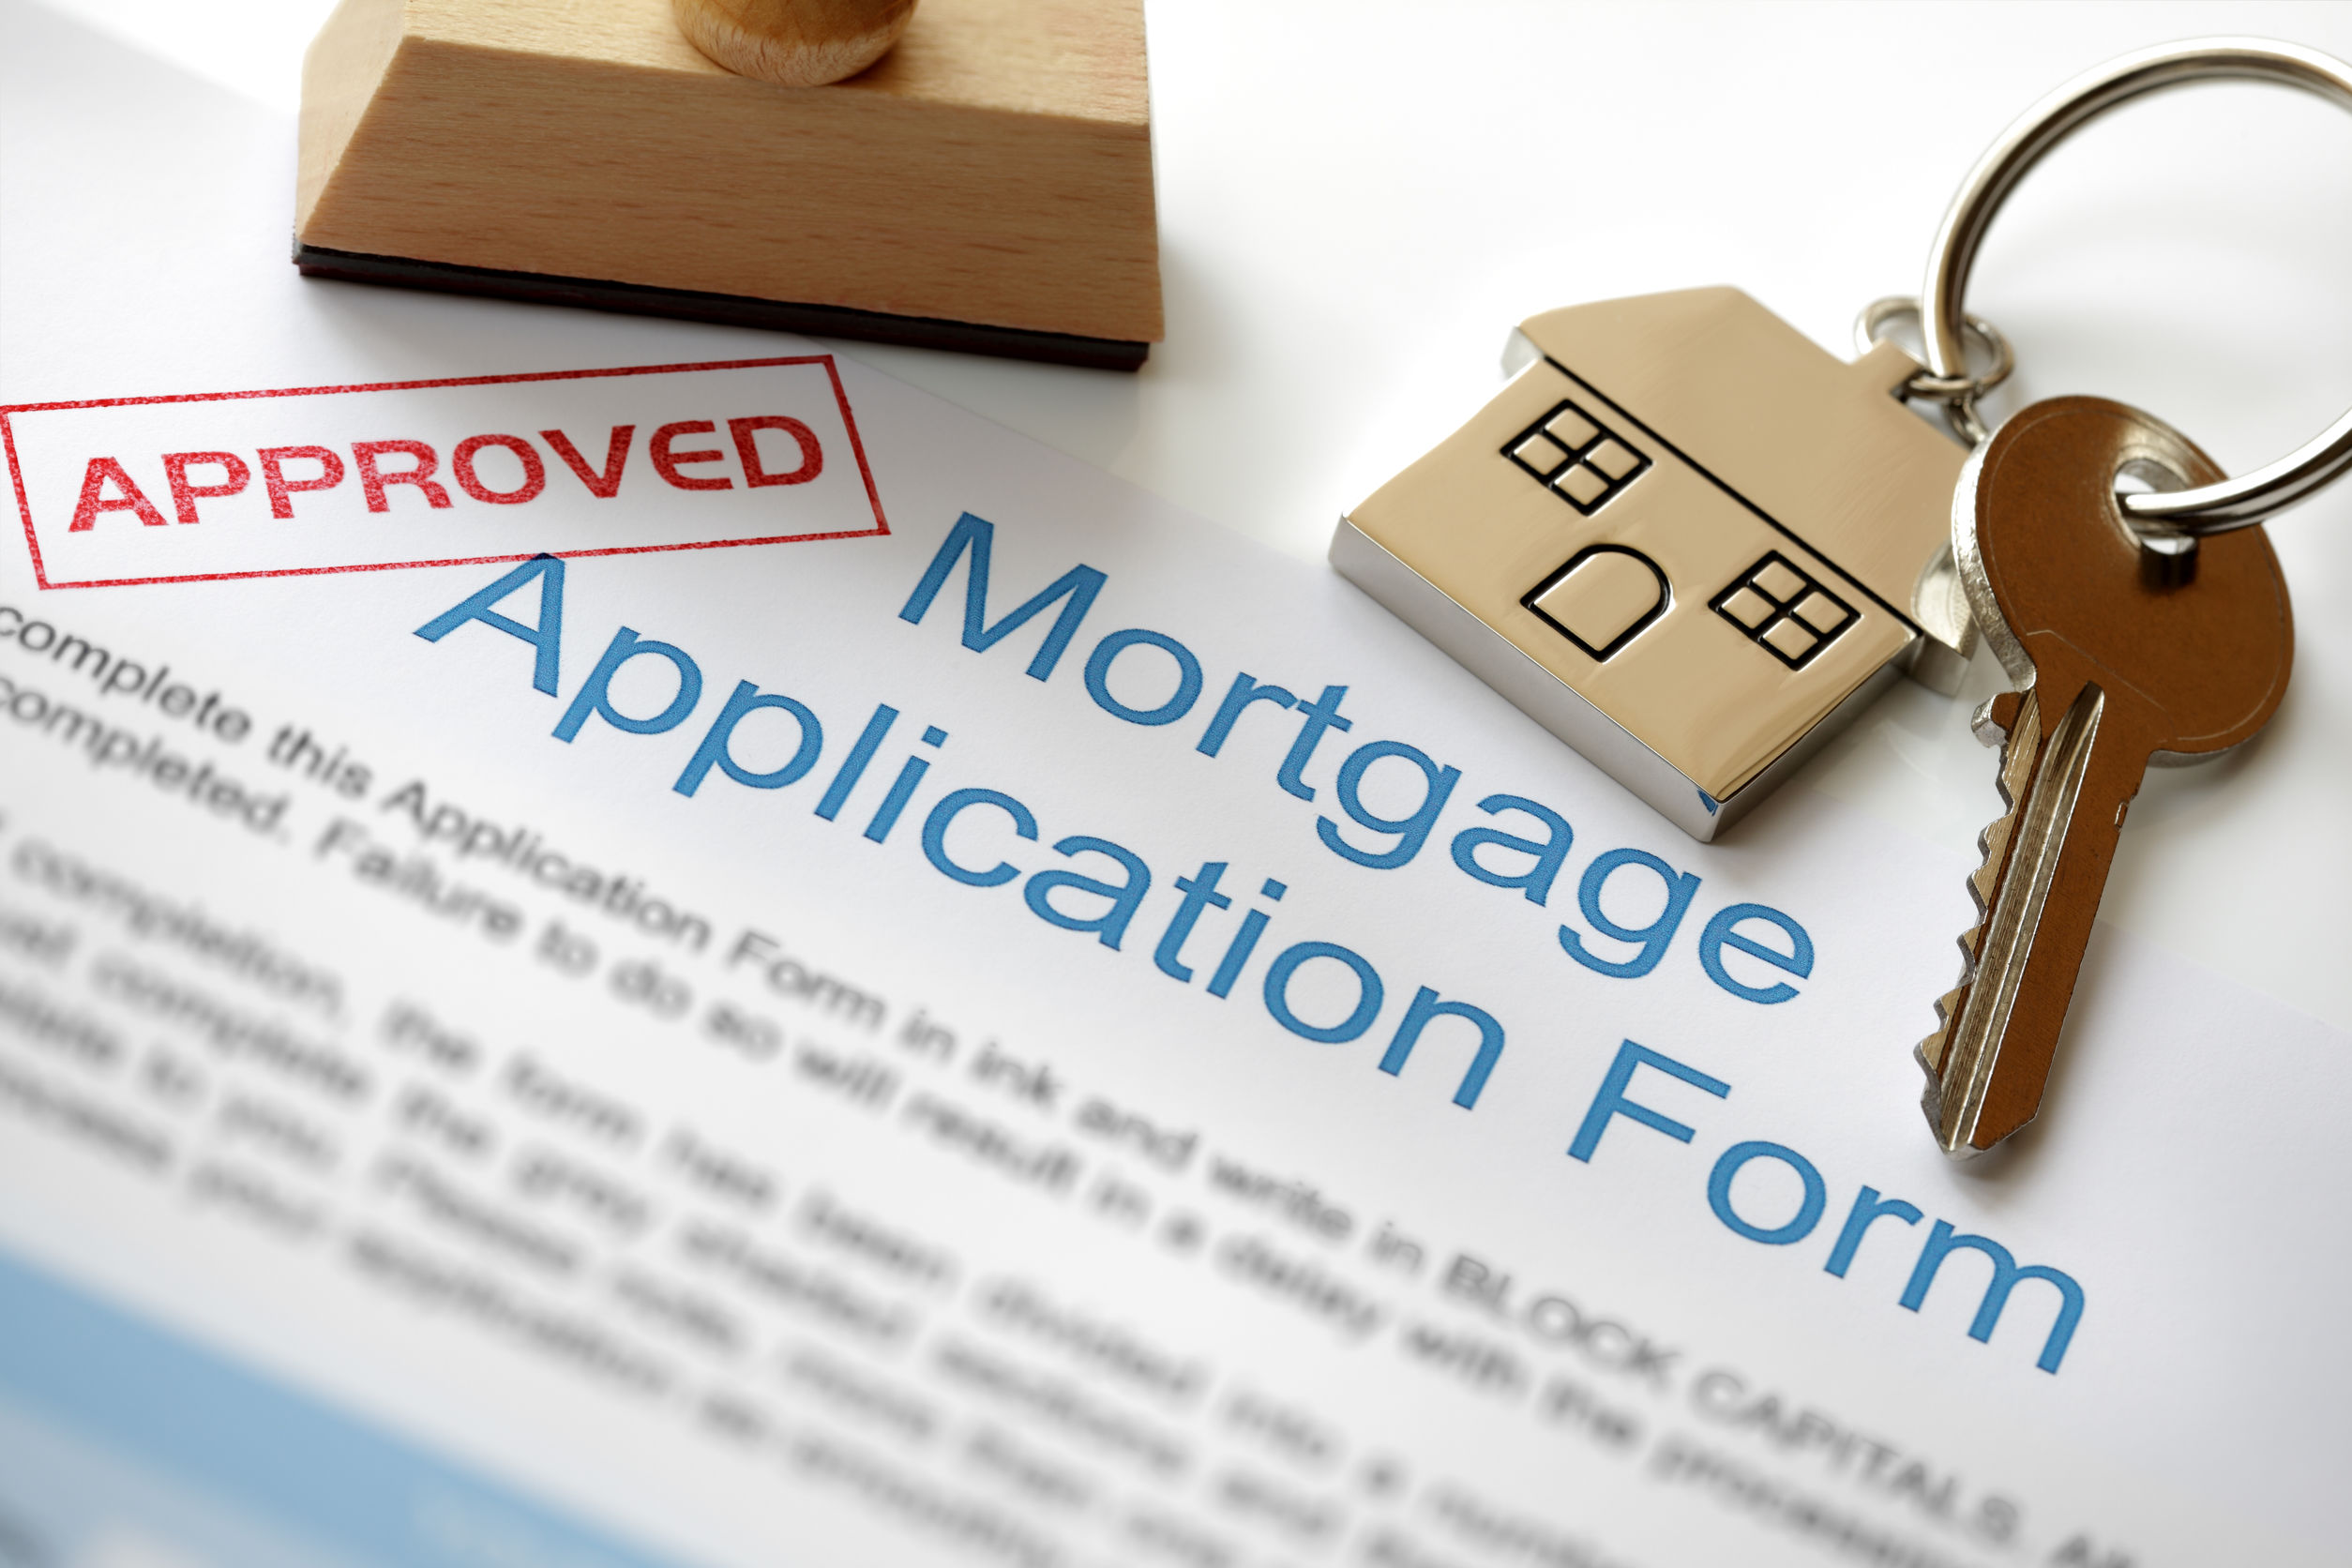 What Does Mortgage Encompass in Real Estate Transaction?